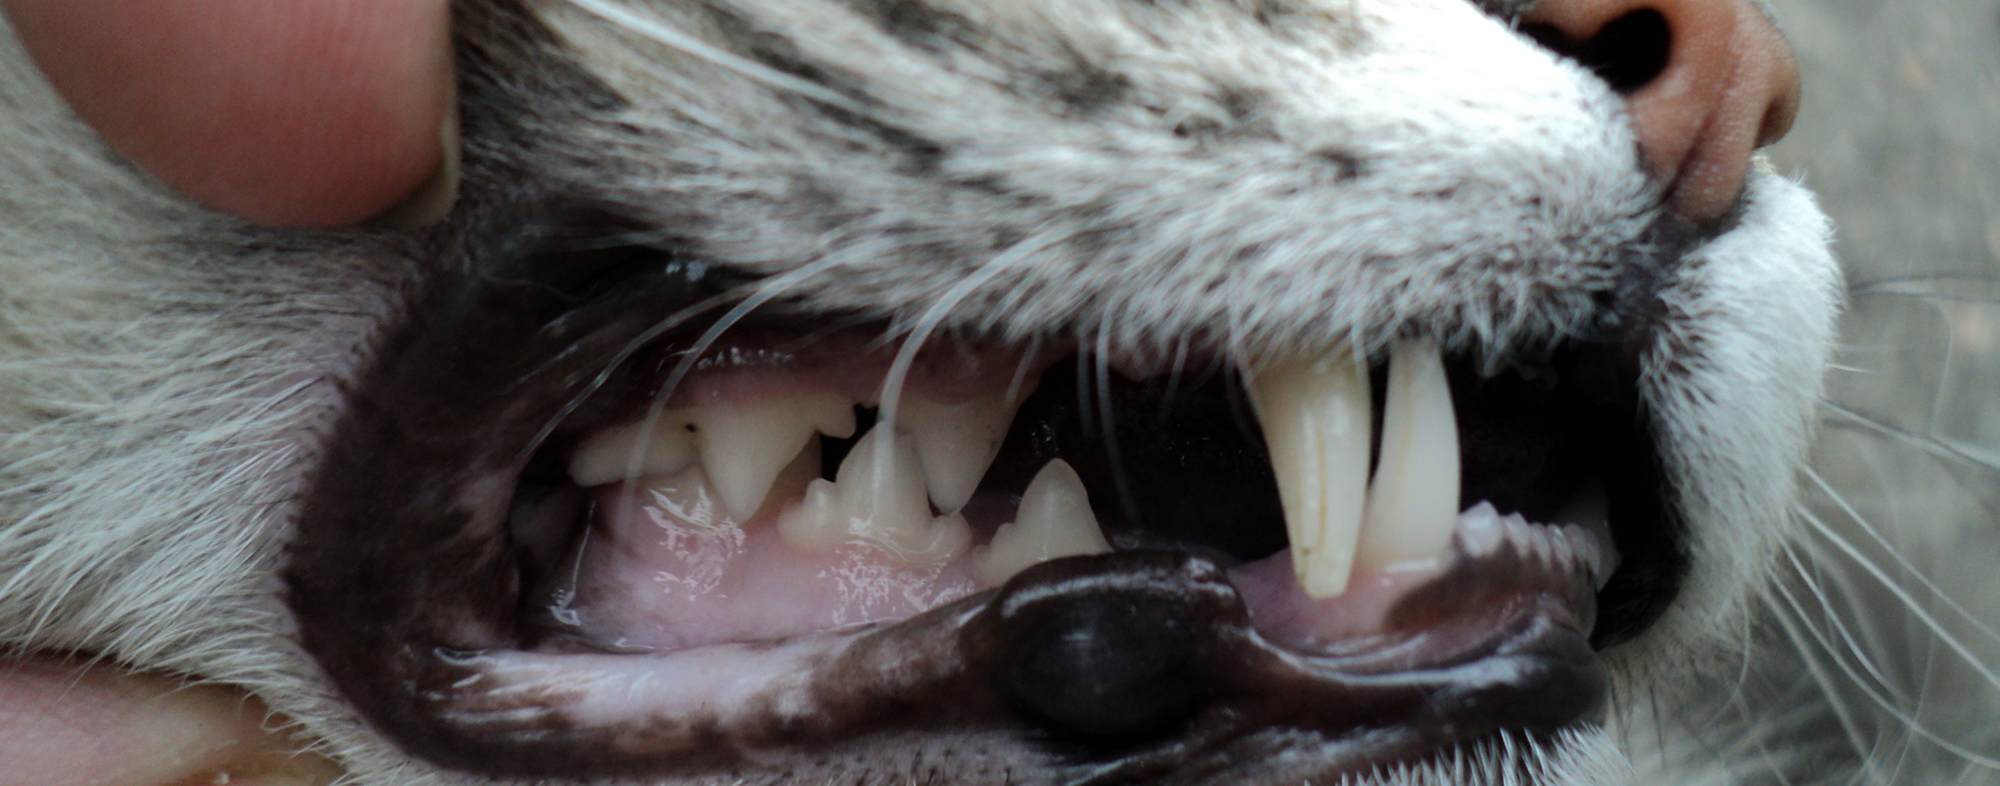 Pet cat with good oral hygiene and a mouth full of white teeth